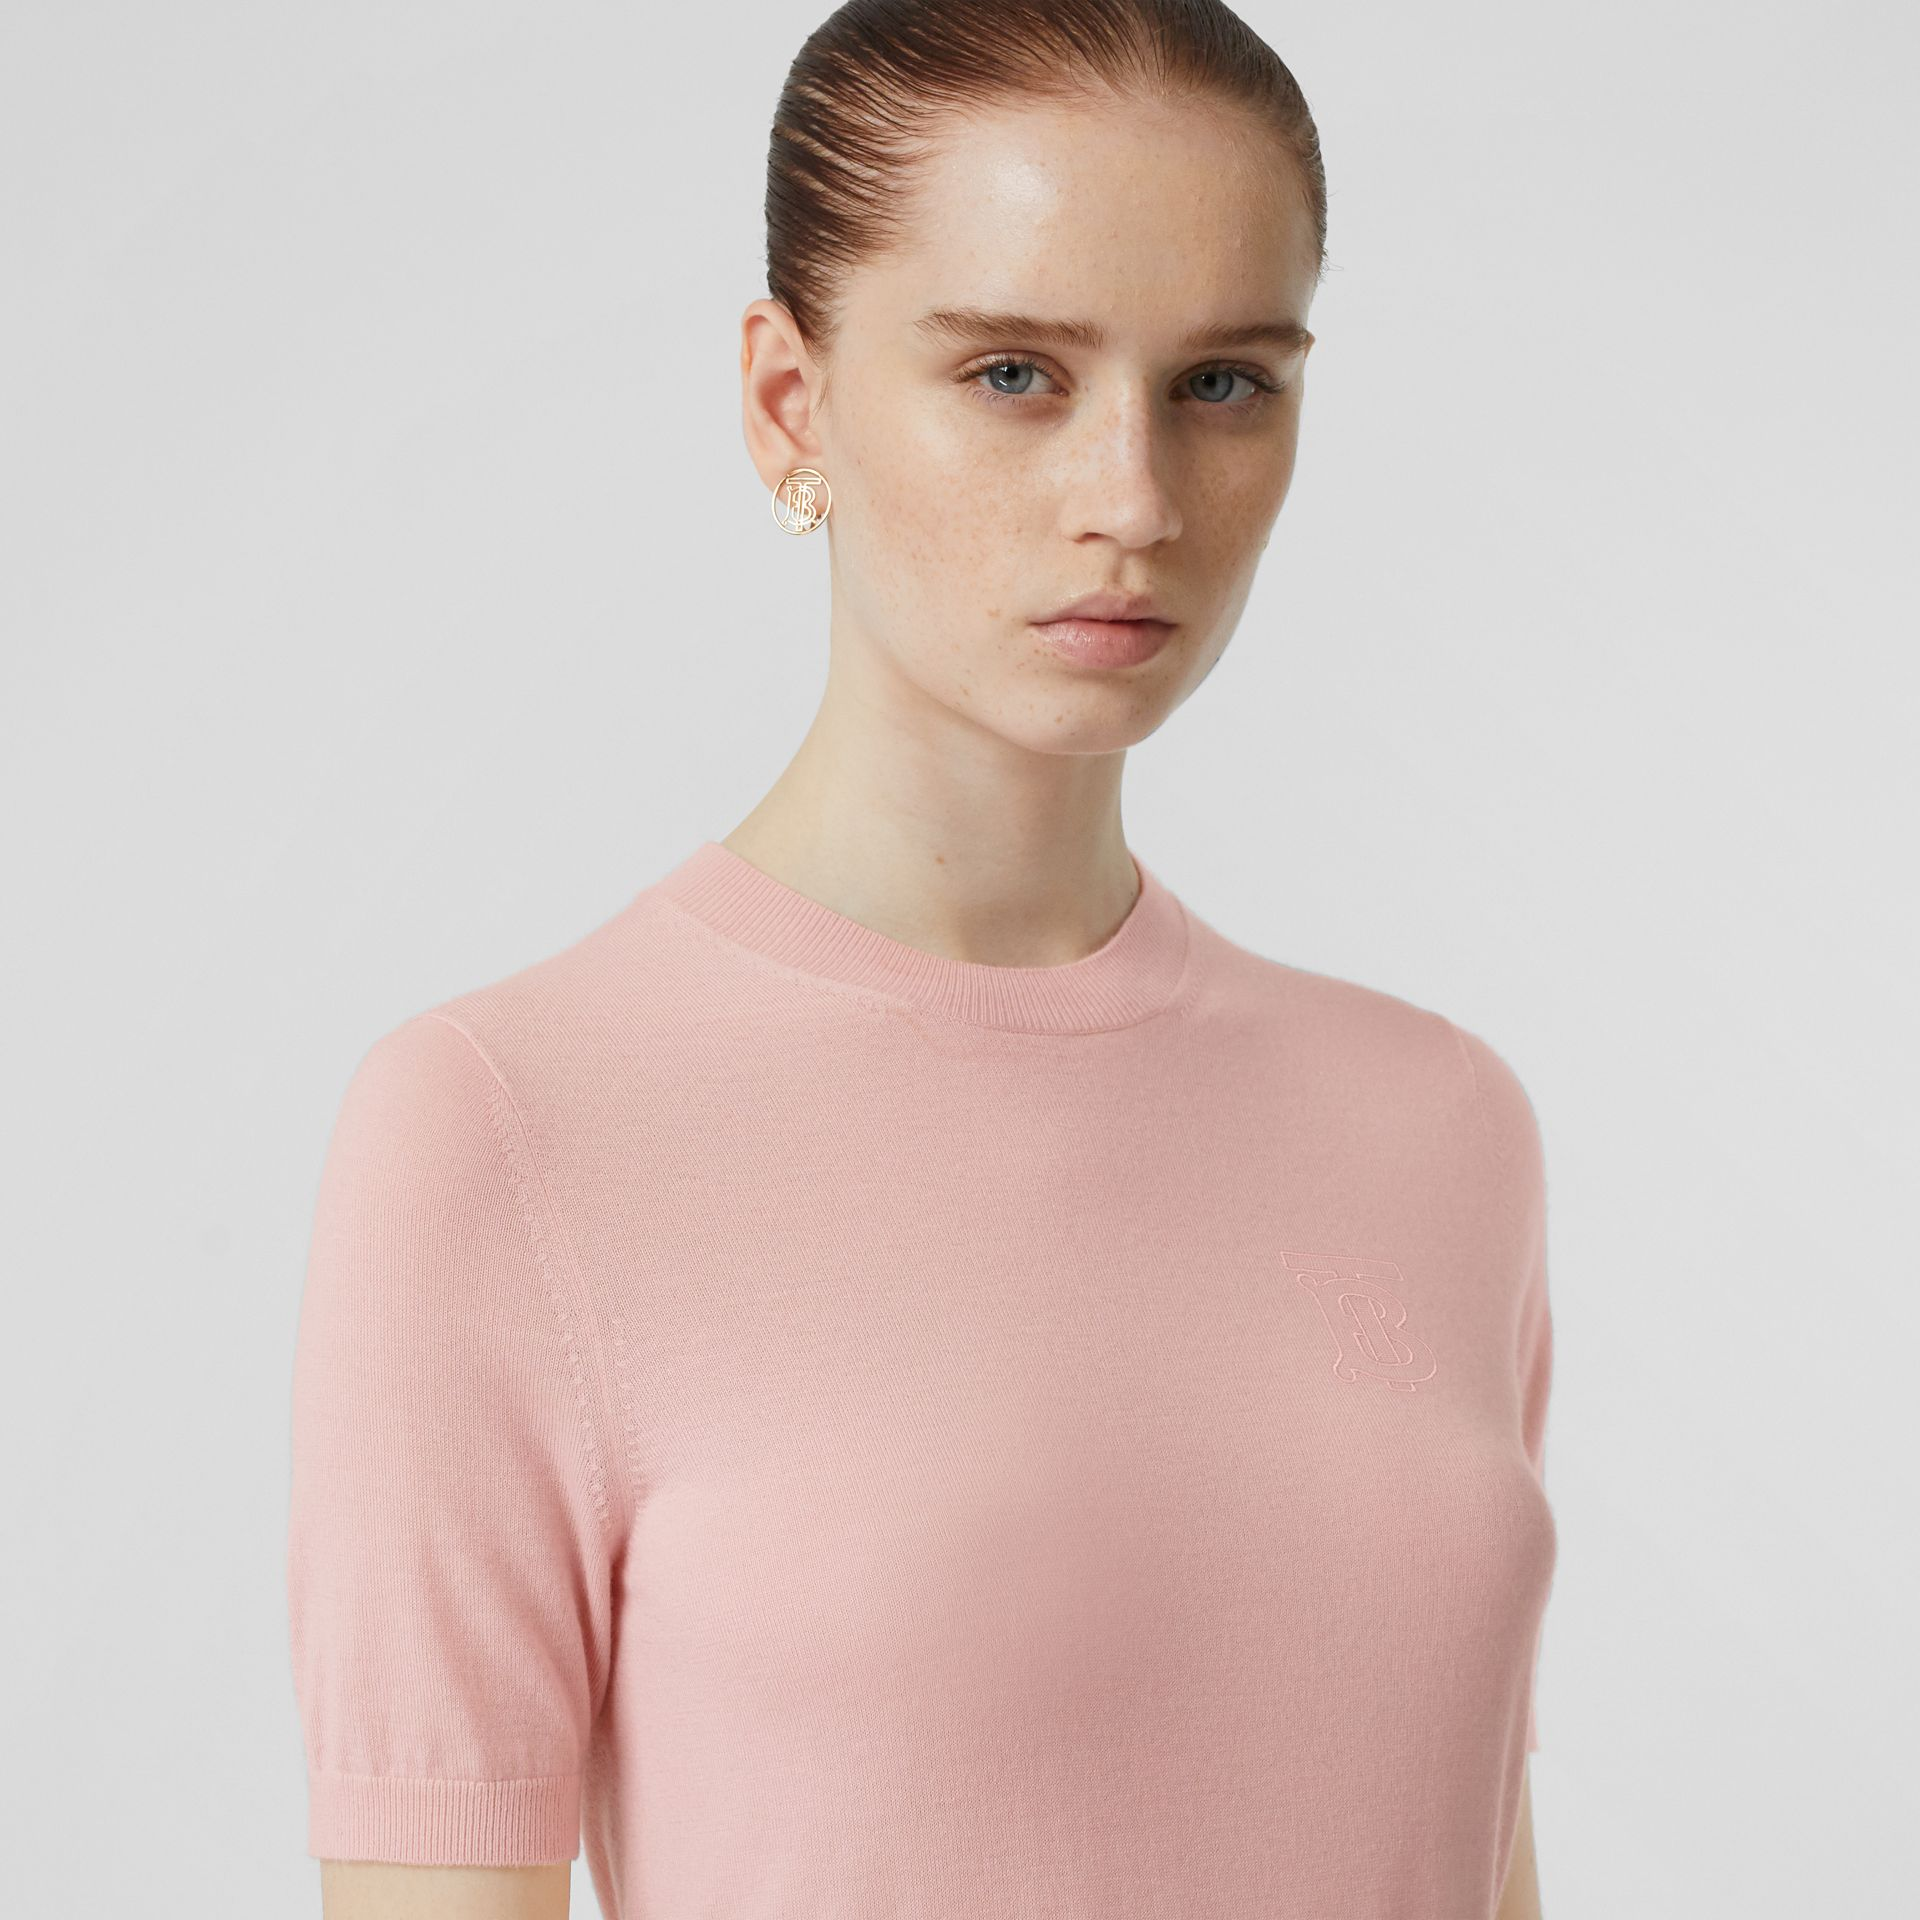 Monogram Motif Cashmere Top in Pink - Women | Burberry - gallery image 1